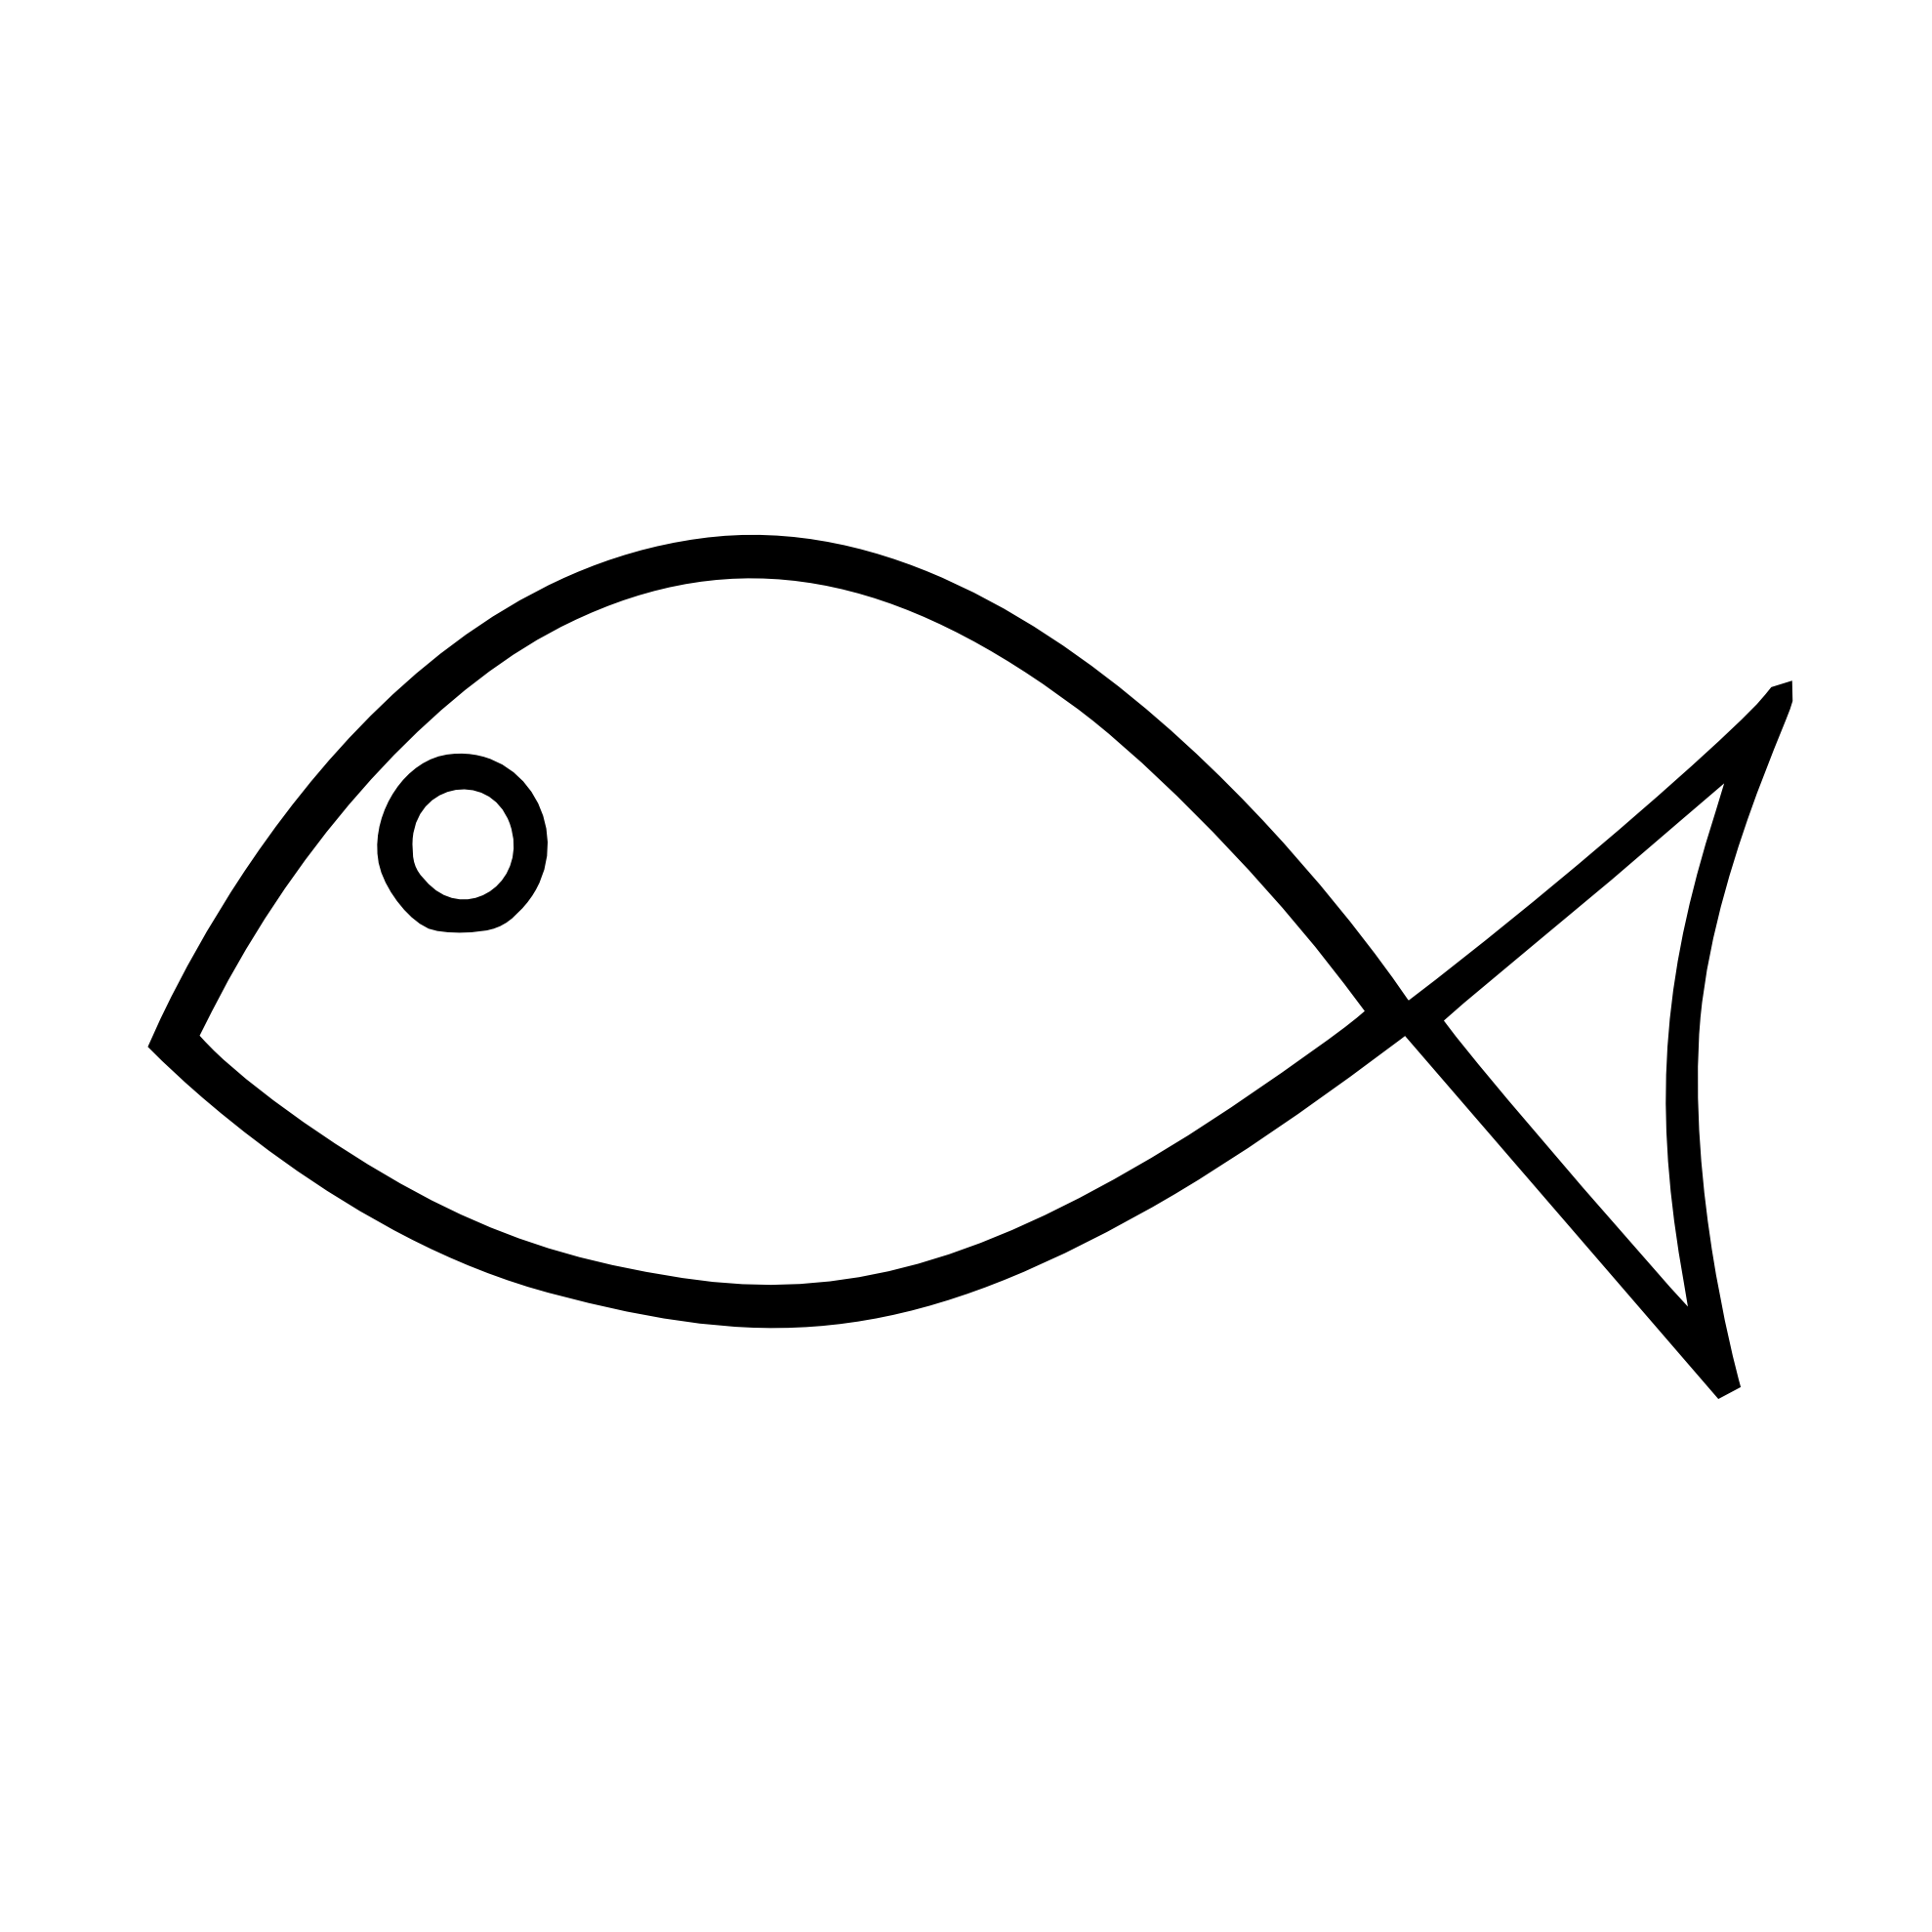 Free Black And White Fish Images, Download Free Clip Art.